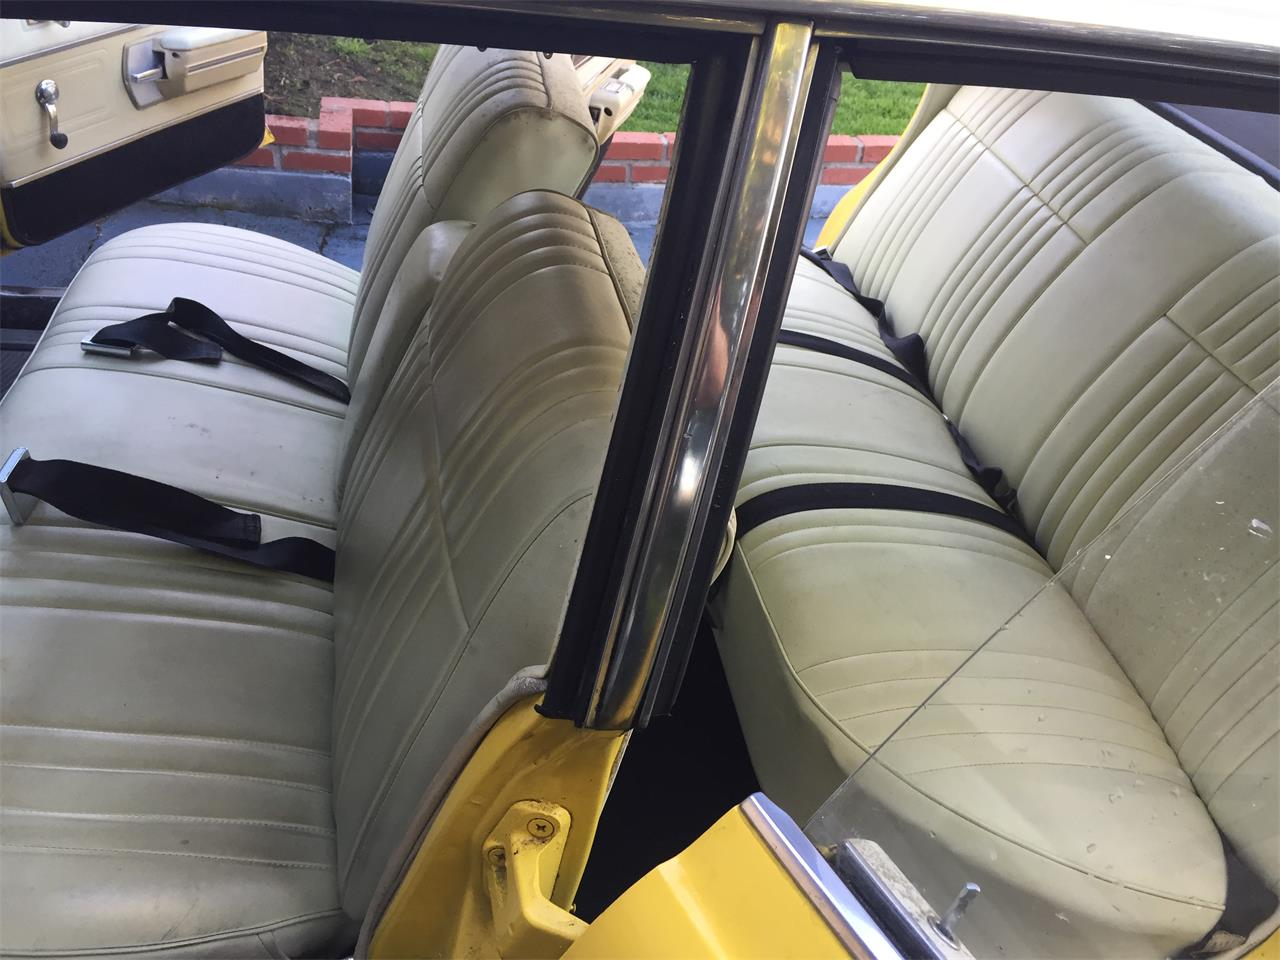 1968 Buick Electra 225 for sale in Hayward, CA – photo 3